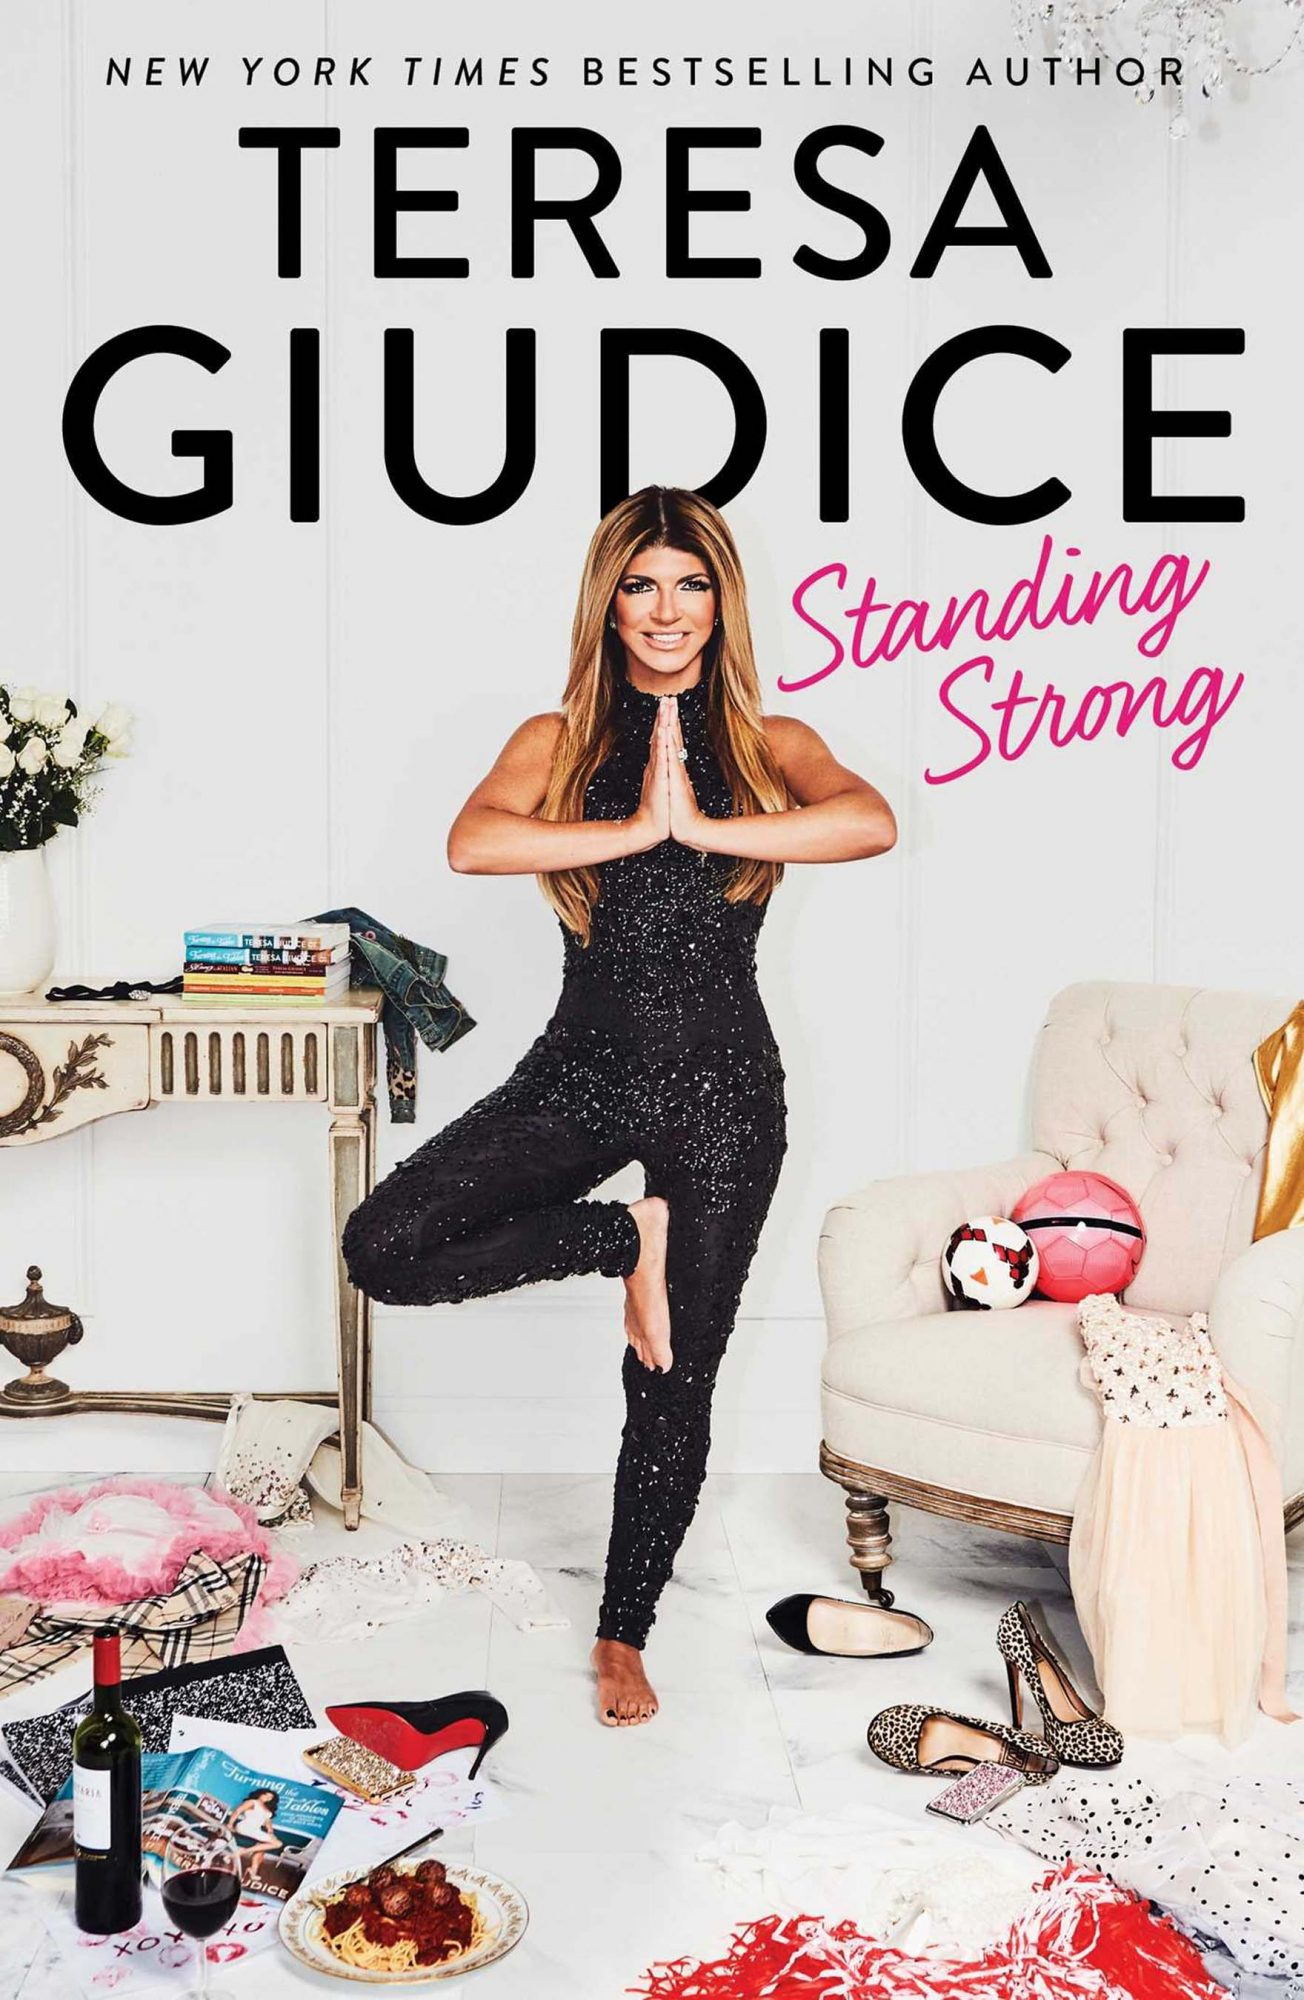 Standing Strong Hardcover – October 3, 2017by Teresa Giudice Gallery Books